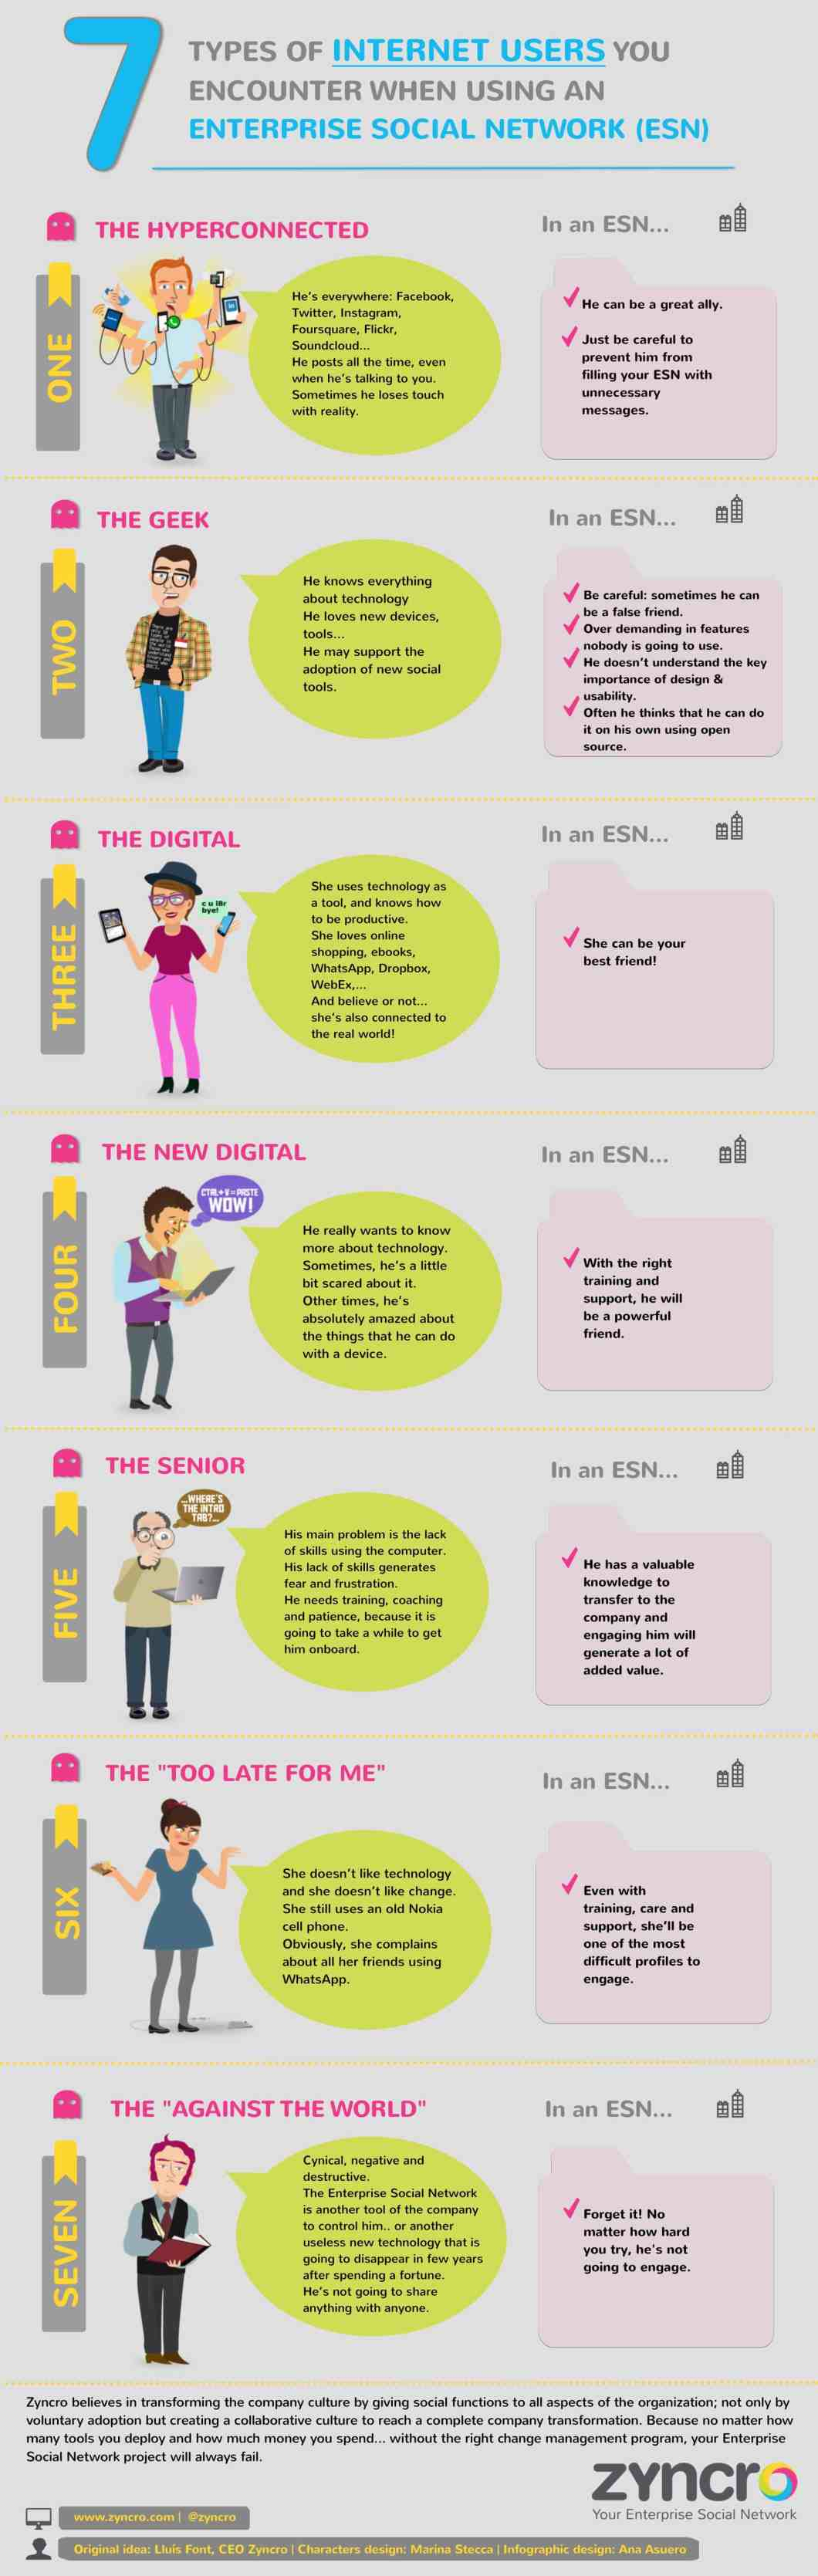 [INFOGRAPHIC] 7 types of internet users you encounter when using an Enterprise Social Network